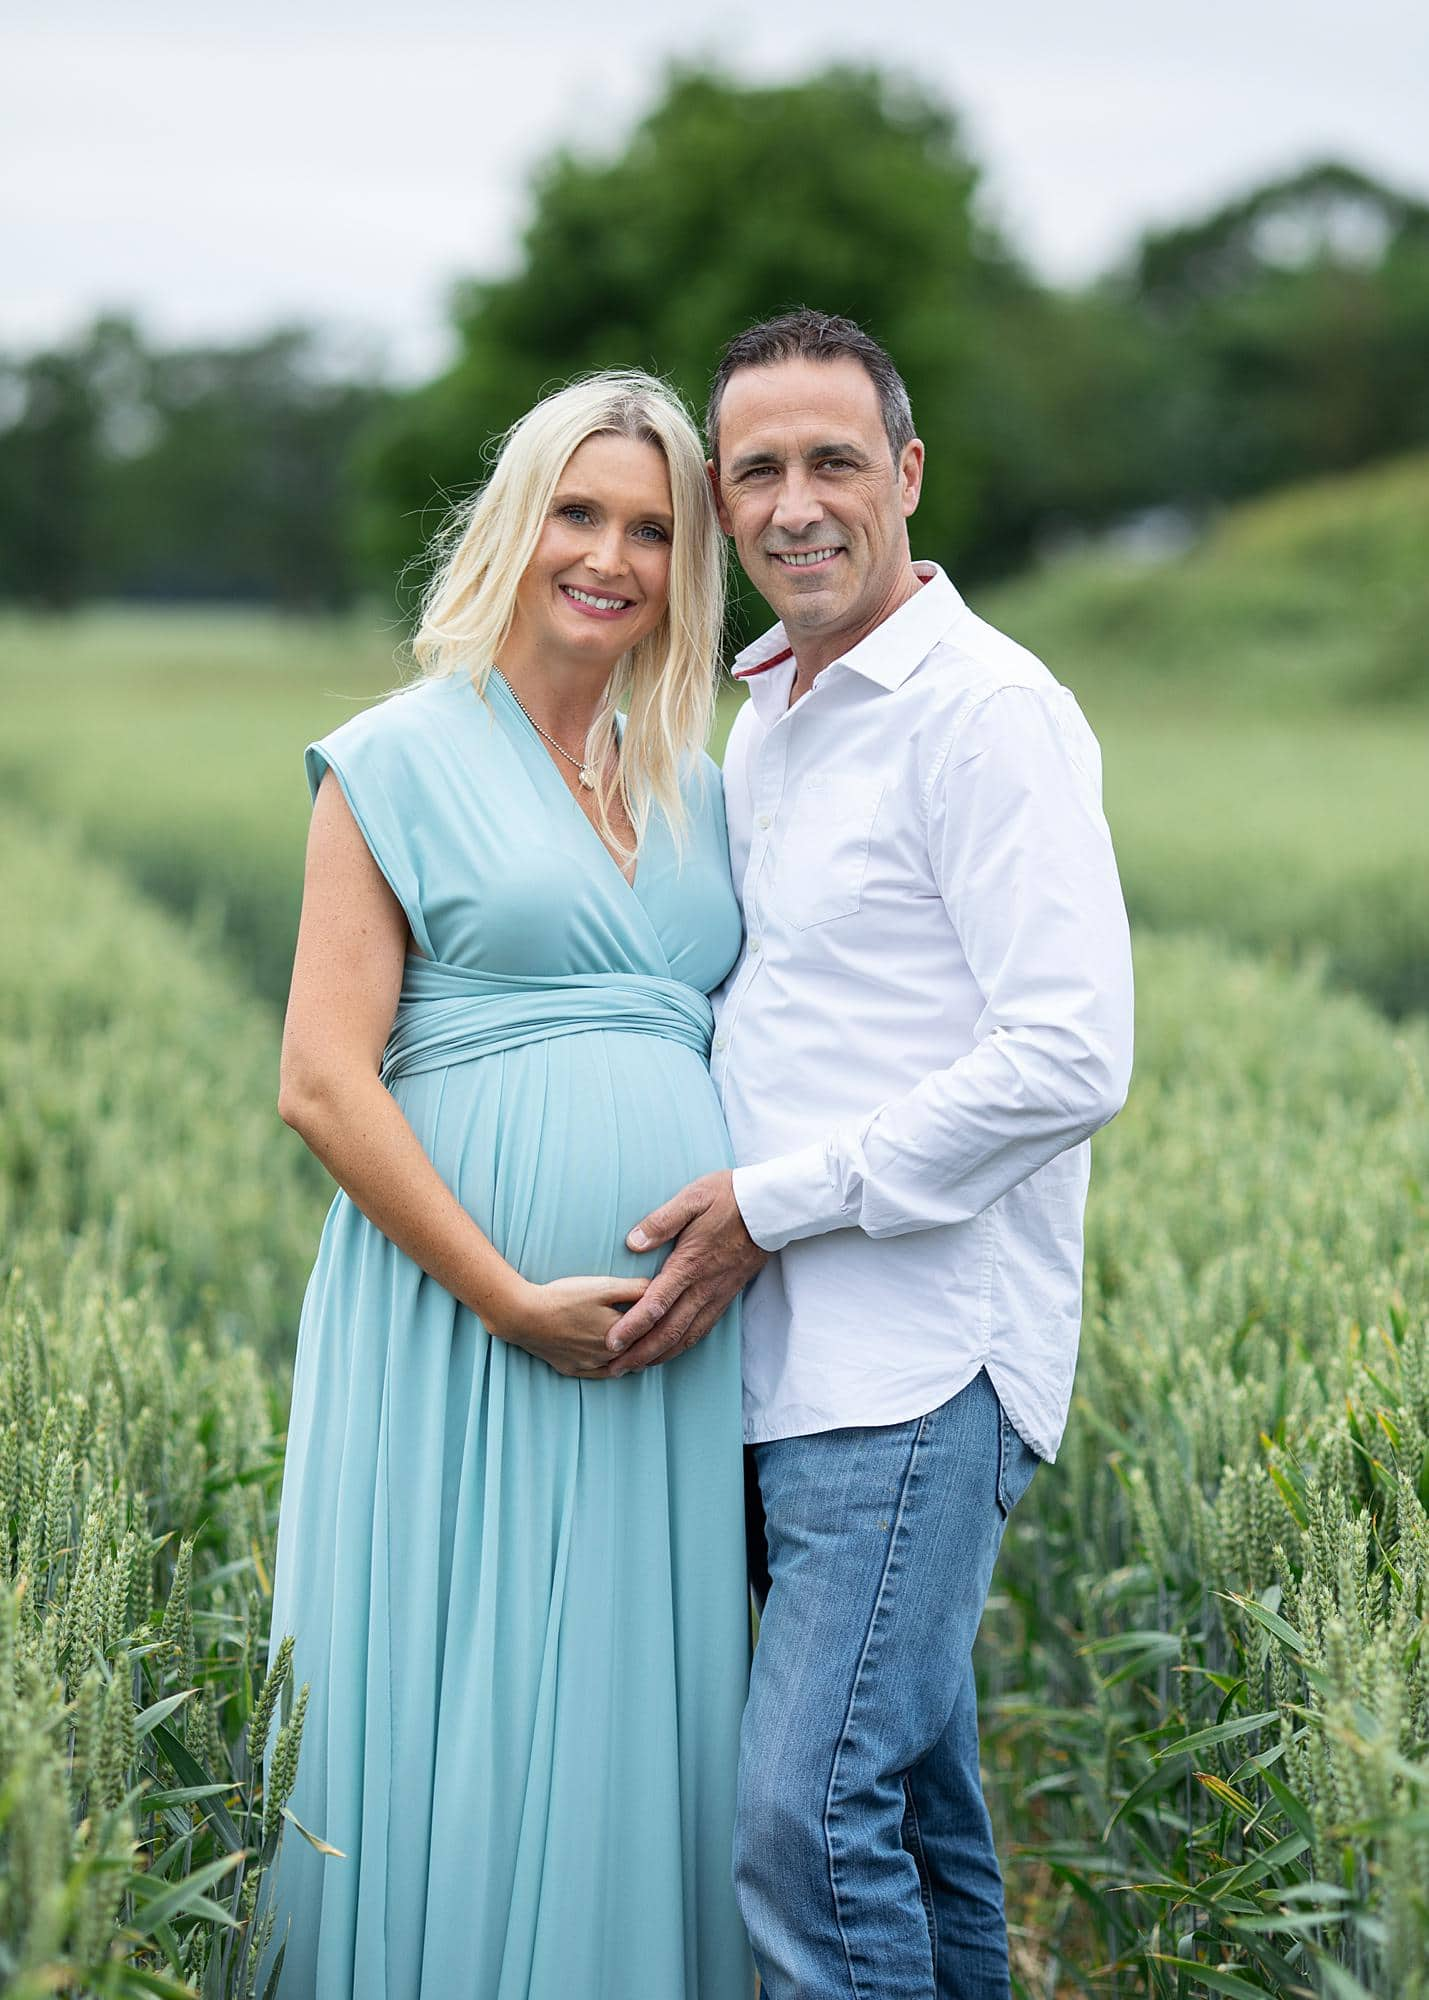 Pregnant woman and her partner posing in a blue dress for a maternity photoshoot on her Suffolk farm